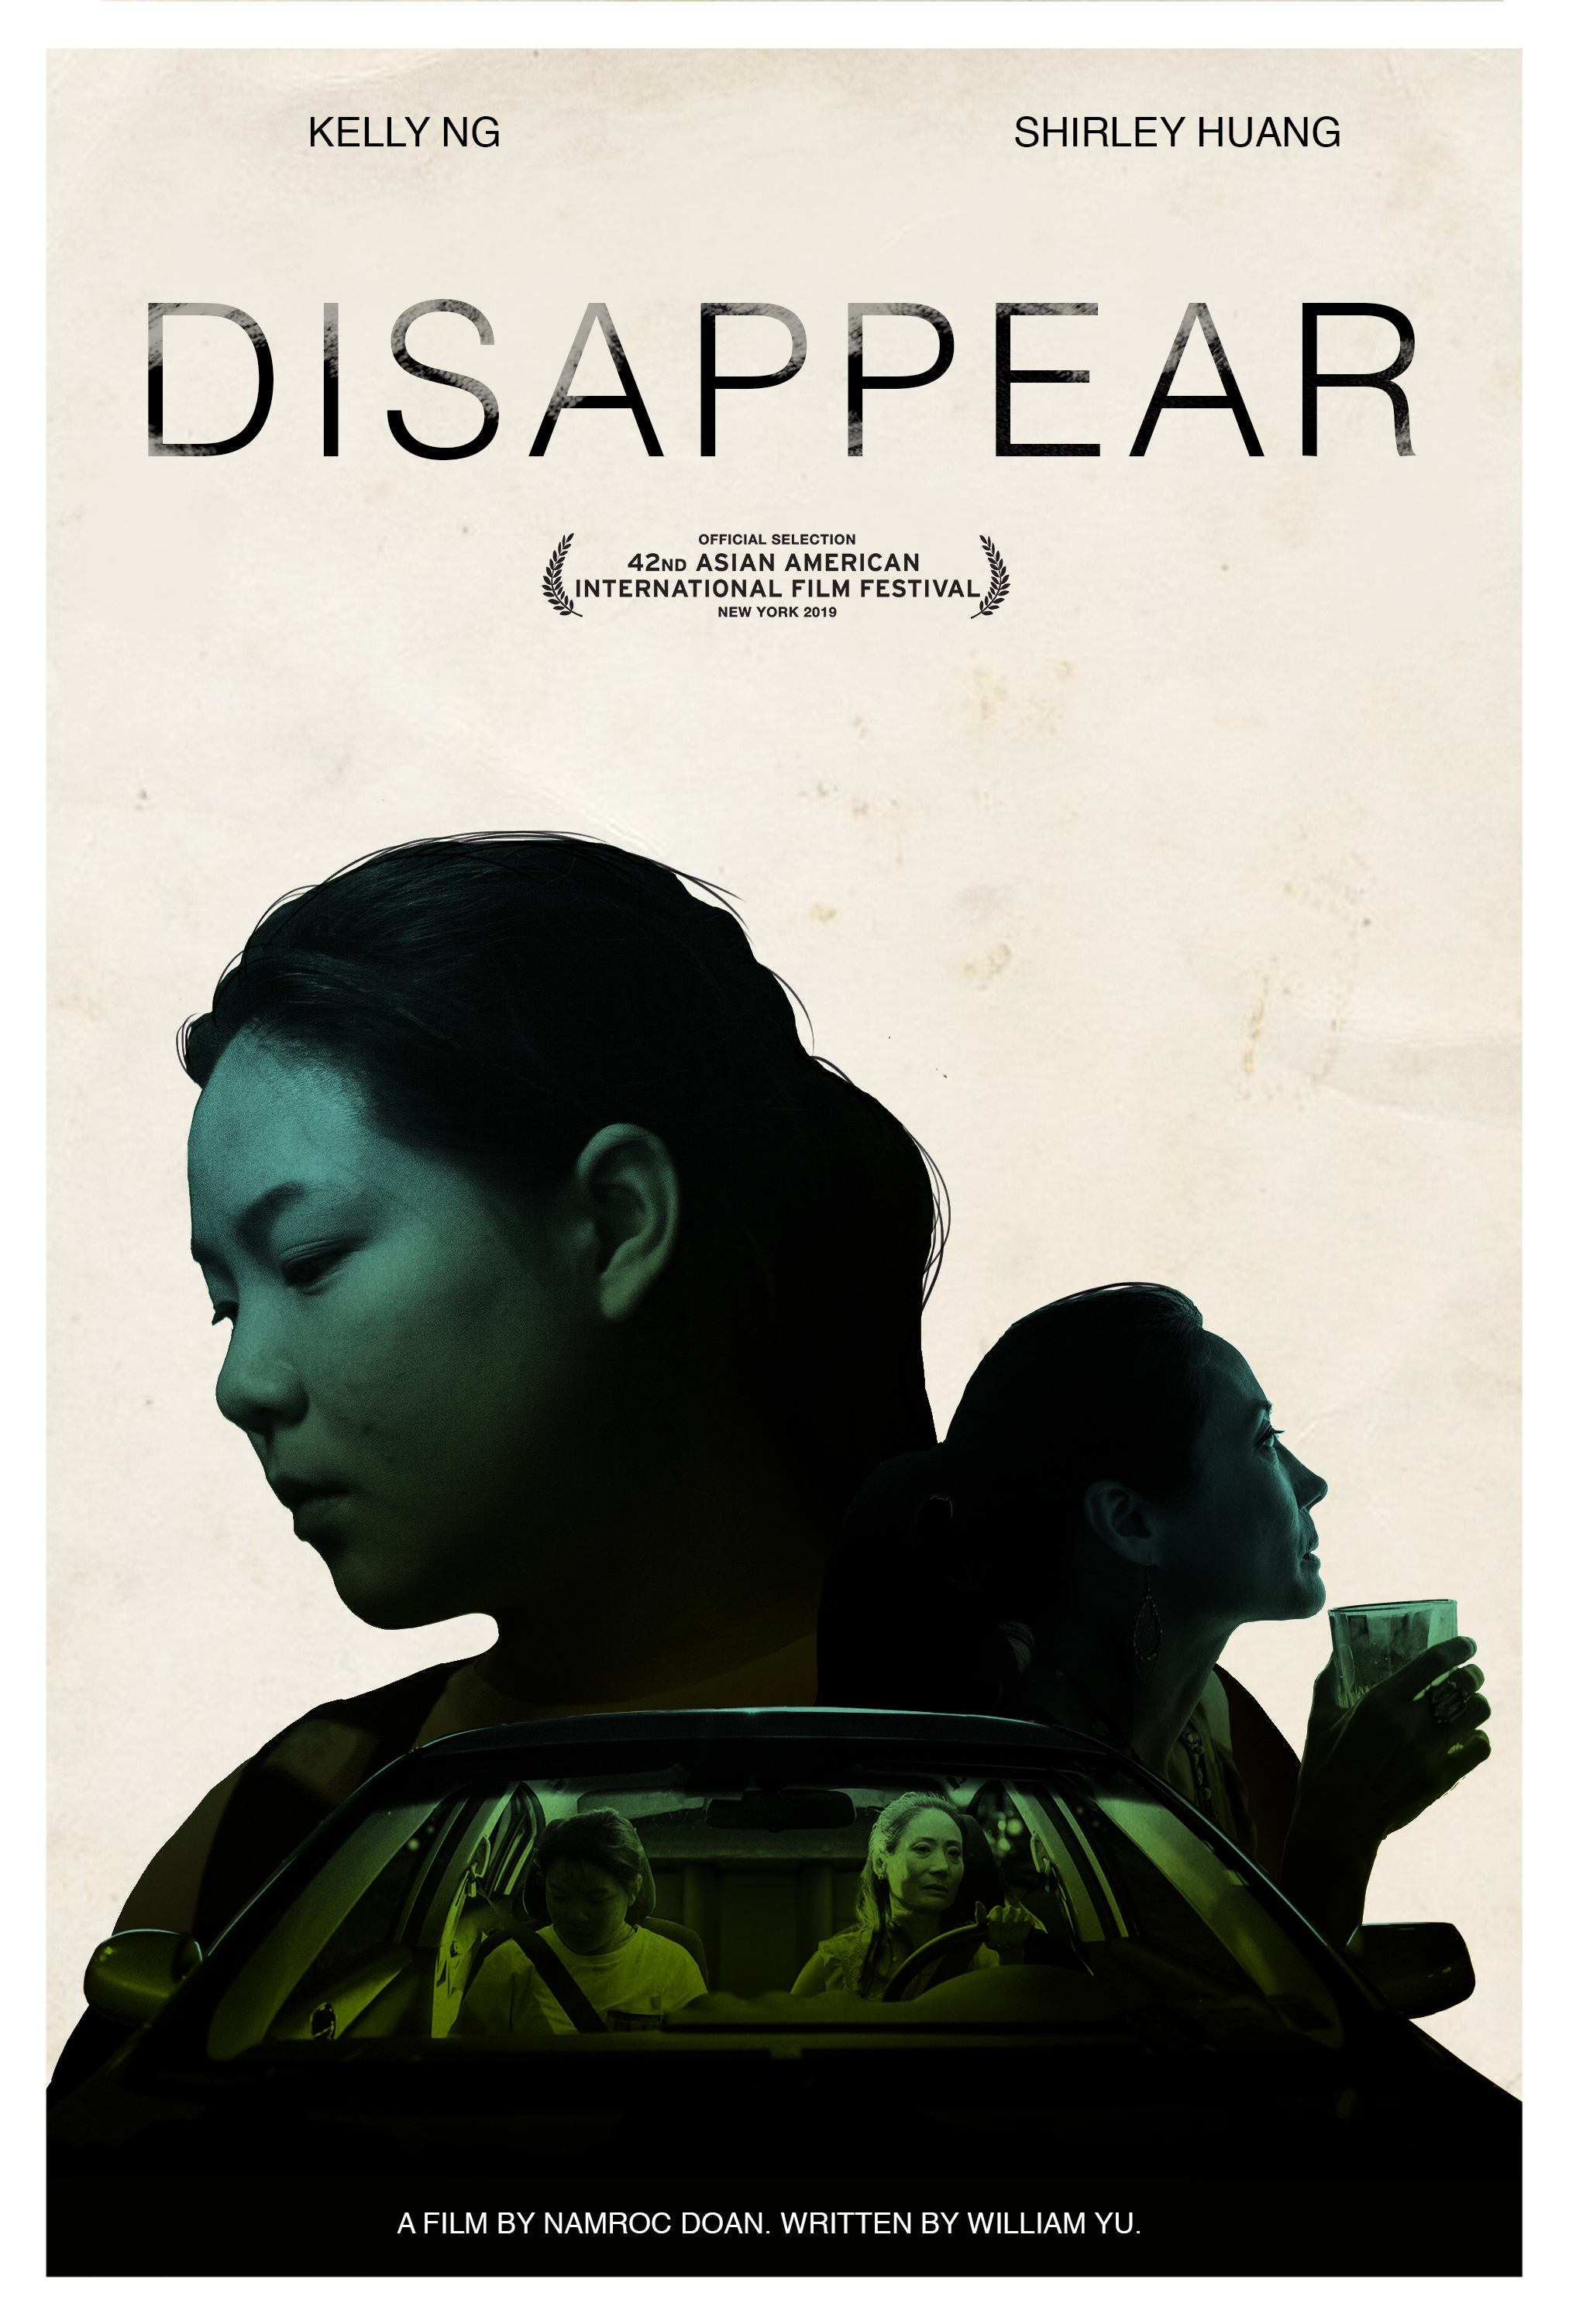 *DISAPPEAR - *Official Selection for the 42nd Asian American International Film FestivalA daughter gets manipulated by her mother to pull off a heist and struggles with the fallout of the crime.Directed by Namroc DoanWritten by William YuStarring Kelly Ng as 'Anna' and Shirley Huang as 'Lisa'AAIFF42 Shorts: Otherly Worlds July 28, 2019 Asia SocietyTickets: https://www.goelevent.com/AAIFF/e/OtherlyWorldsWatch the film here:https://vimeo.com/287556445